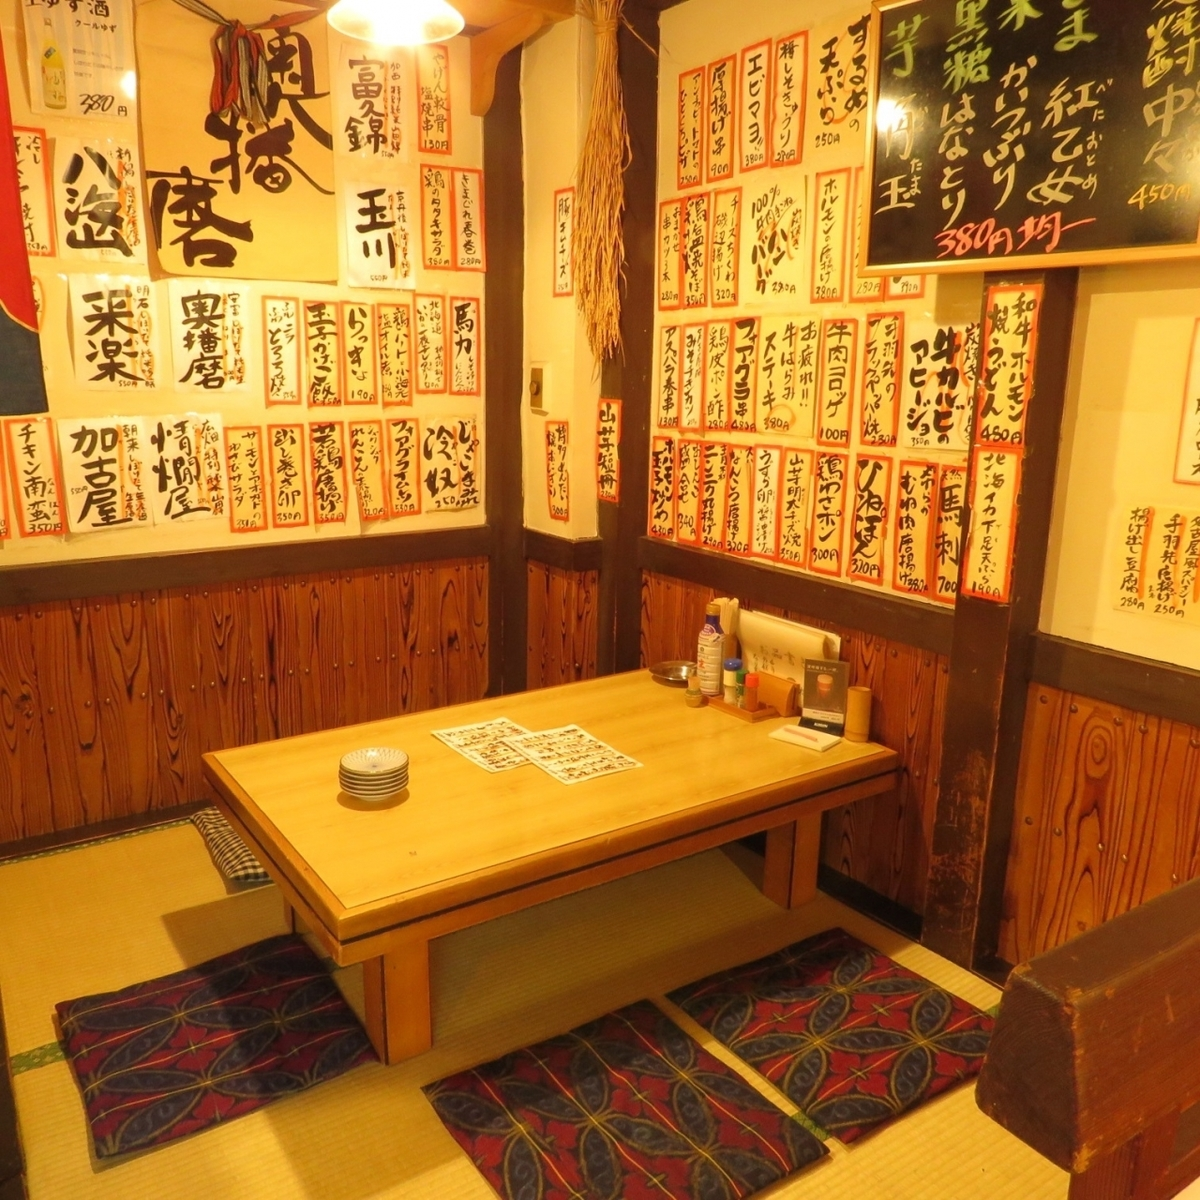 【Arashi 6 people x 1 desk】! If you connect the seat of [the seat of 8 people × 1 table], it can be up to 15 people!